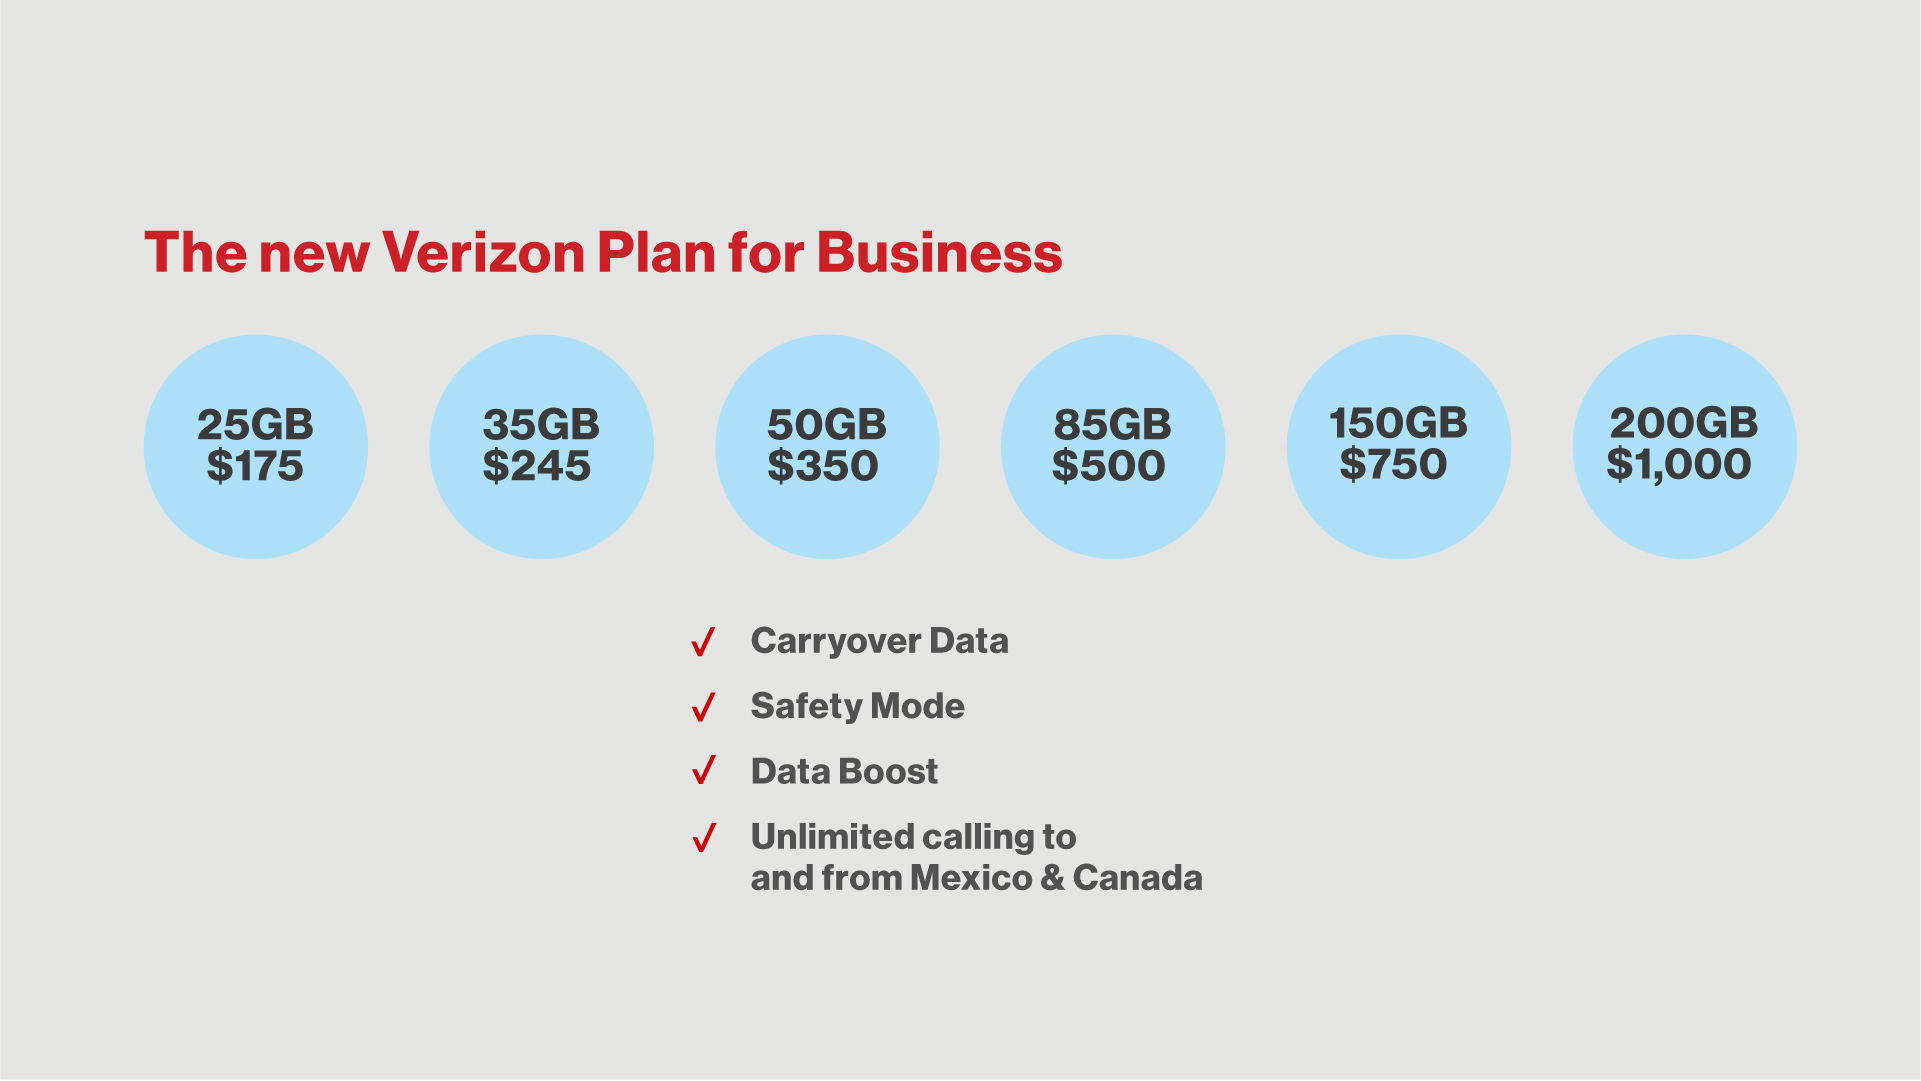 The New Verizon Plan for Businesses